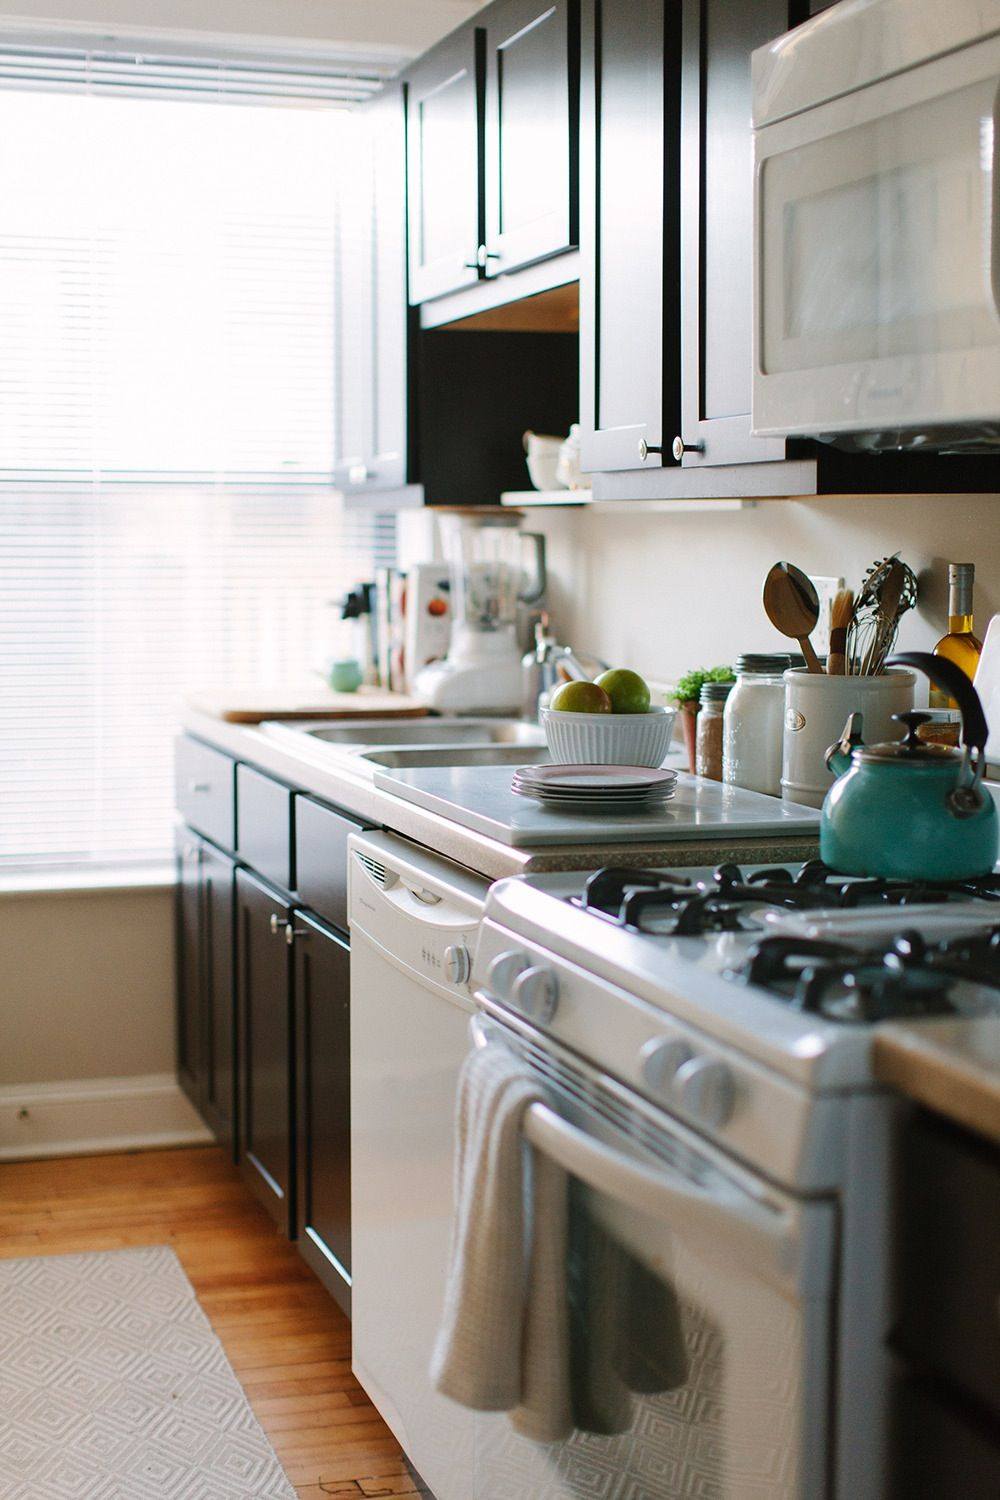 Iu0027ve Lived In Rental Apartments My Entire Adult Life, And Have Experienced  My Share Of Less Than Ideal Kitchens